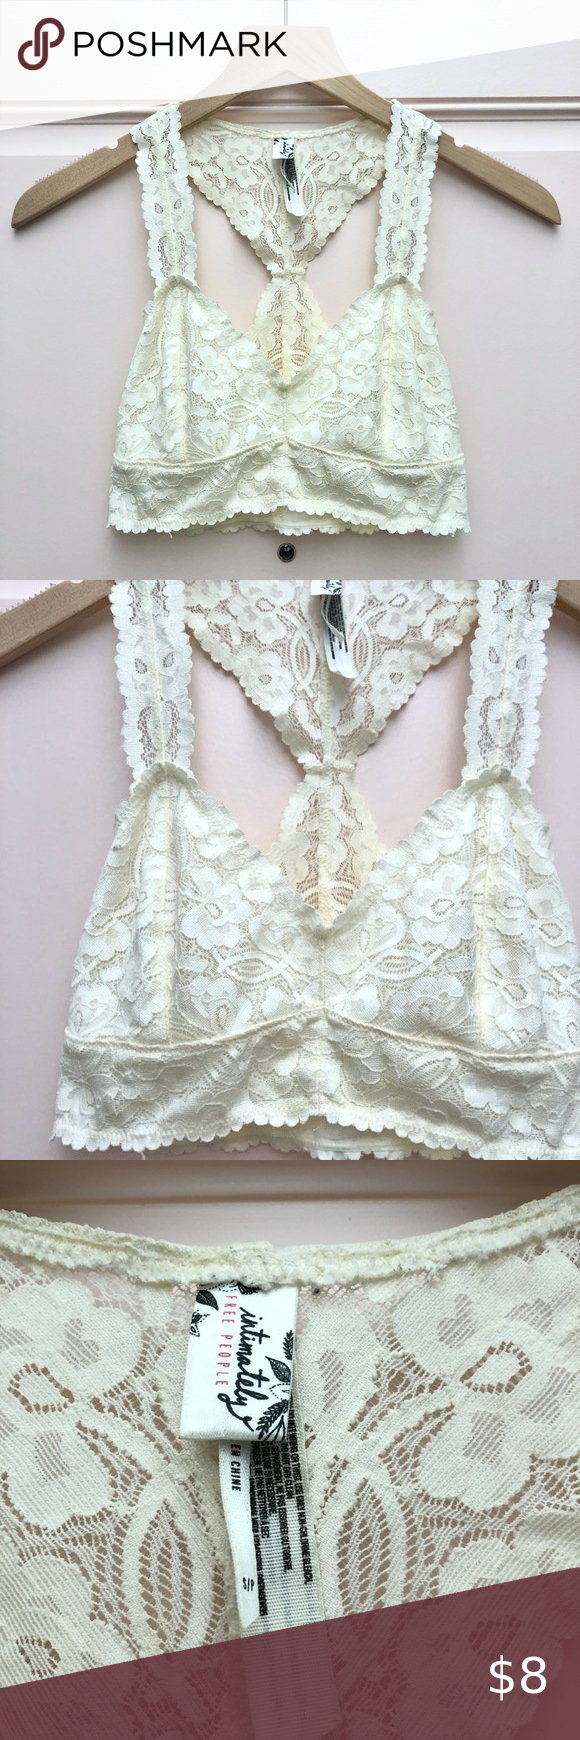 Intimately Free People Ivory Bralette - Size Small Intimately Free People ivory cream lace bralette with racerback. Size Small. 90% Nylon/10% Spandex.   Approximate Measurements • Pit to Pit: 14